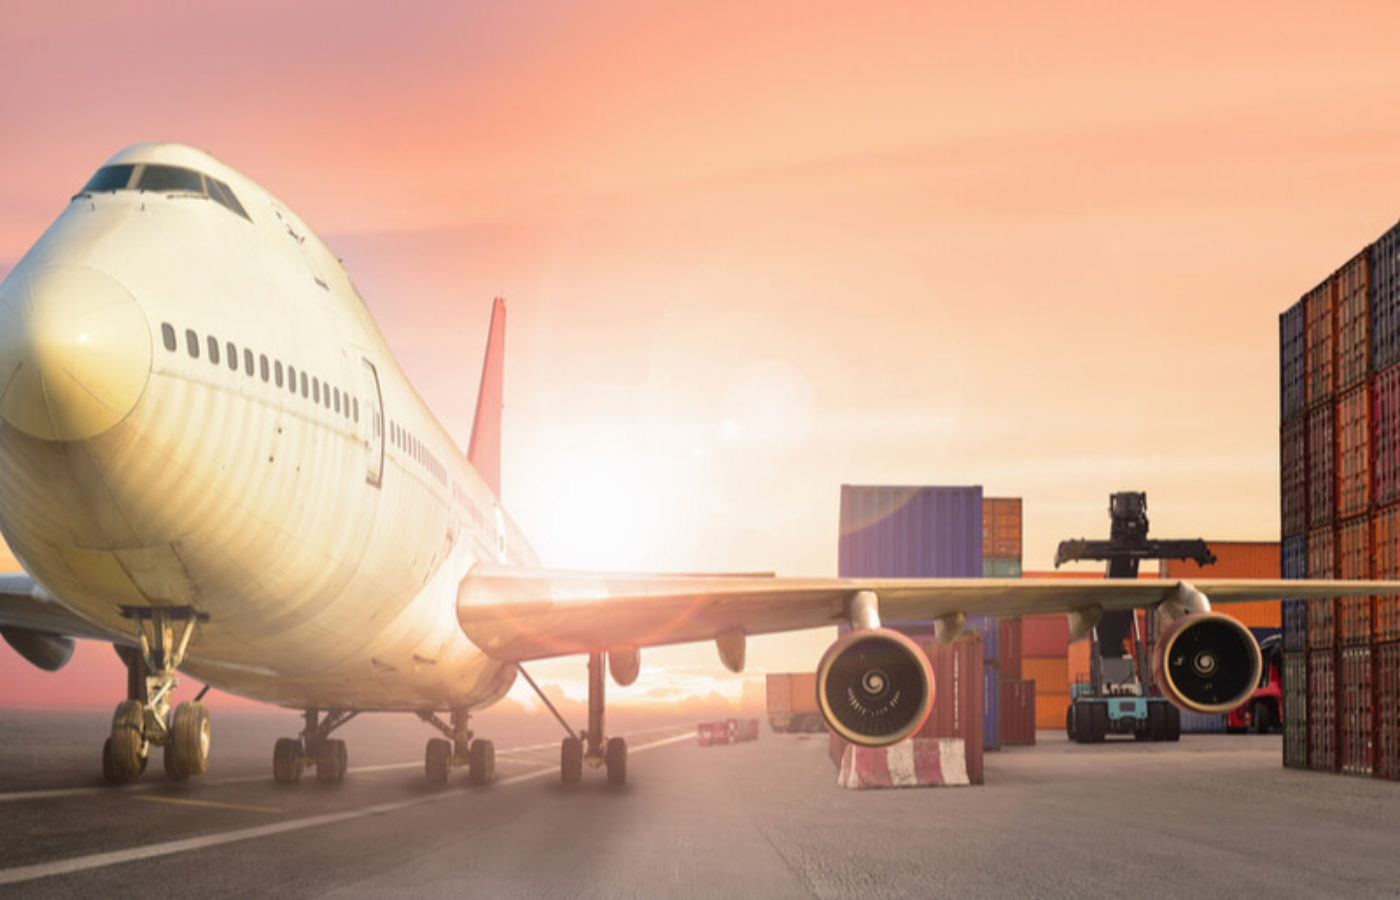 Why COVID-19 has impacted the air freight industry